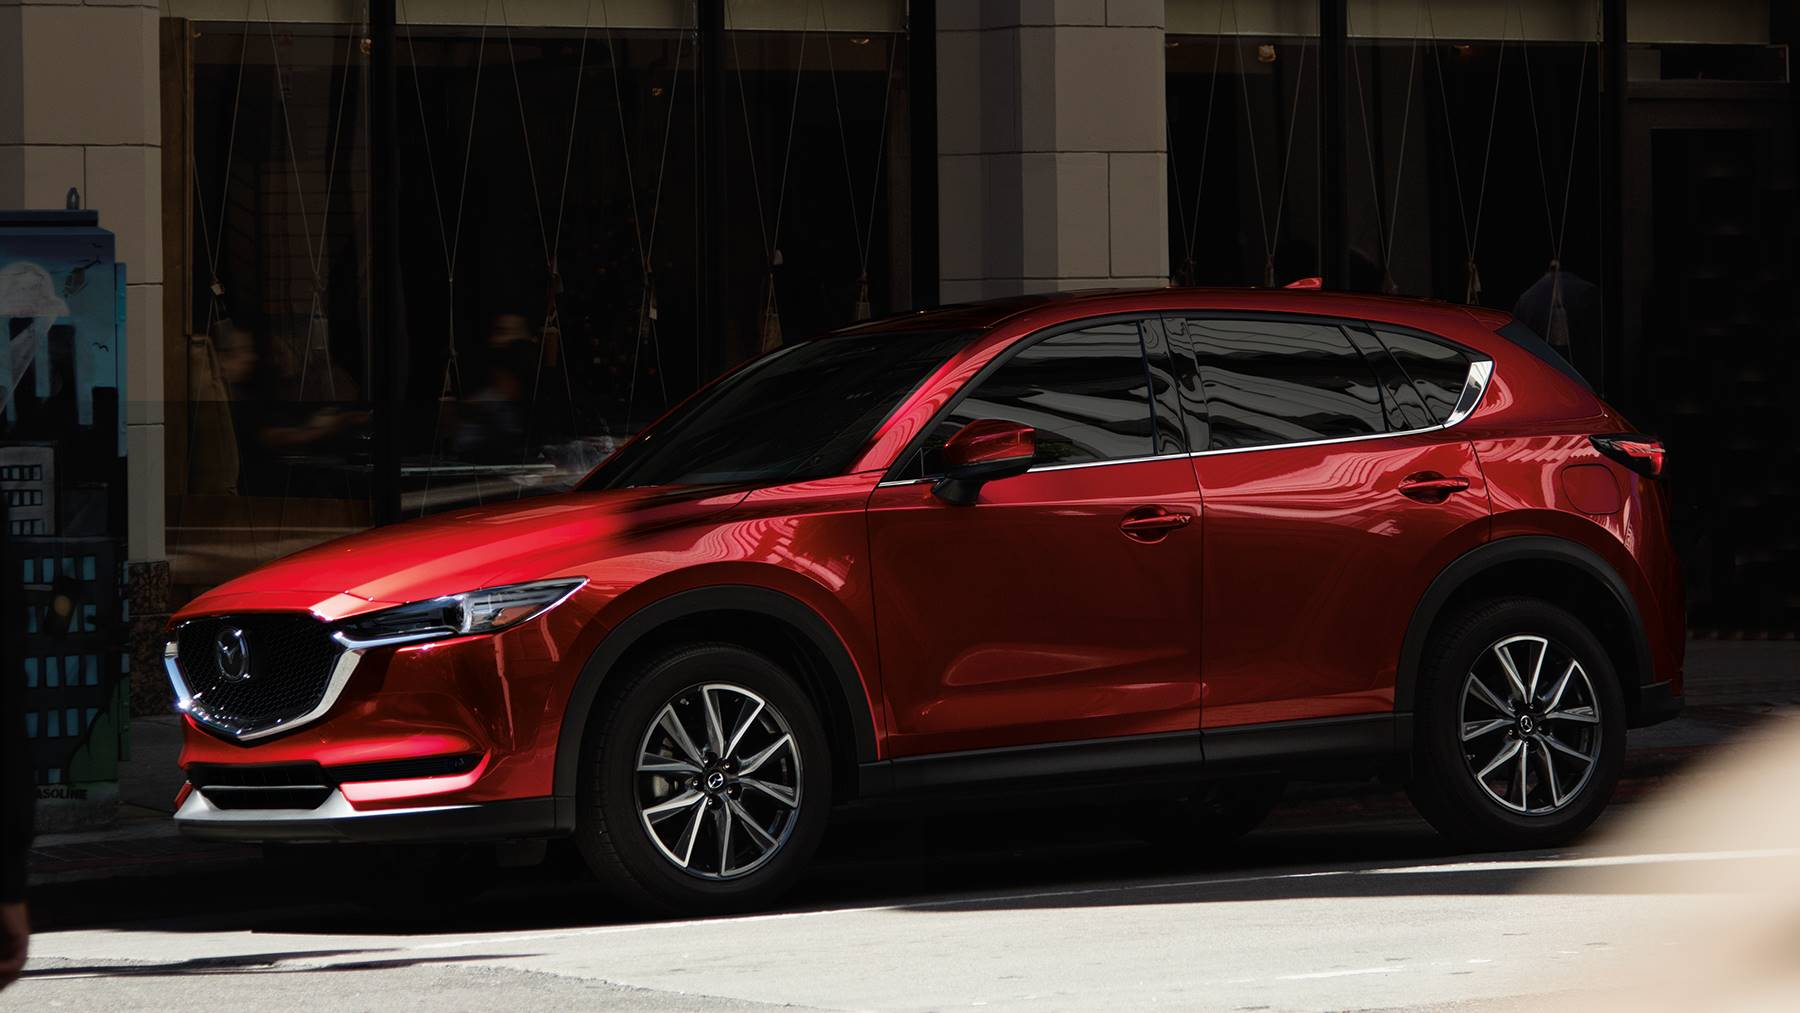 2018 Mazda Cx 5 Leasing In Elk Grove Ca Mazda Of Elk Grove